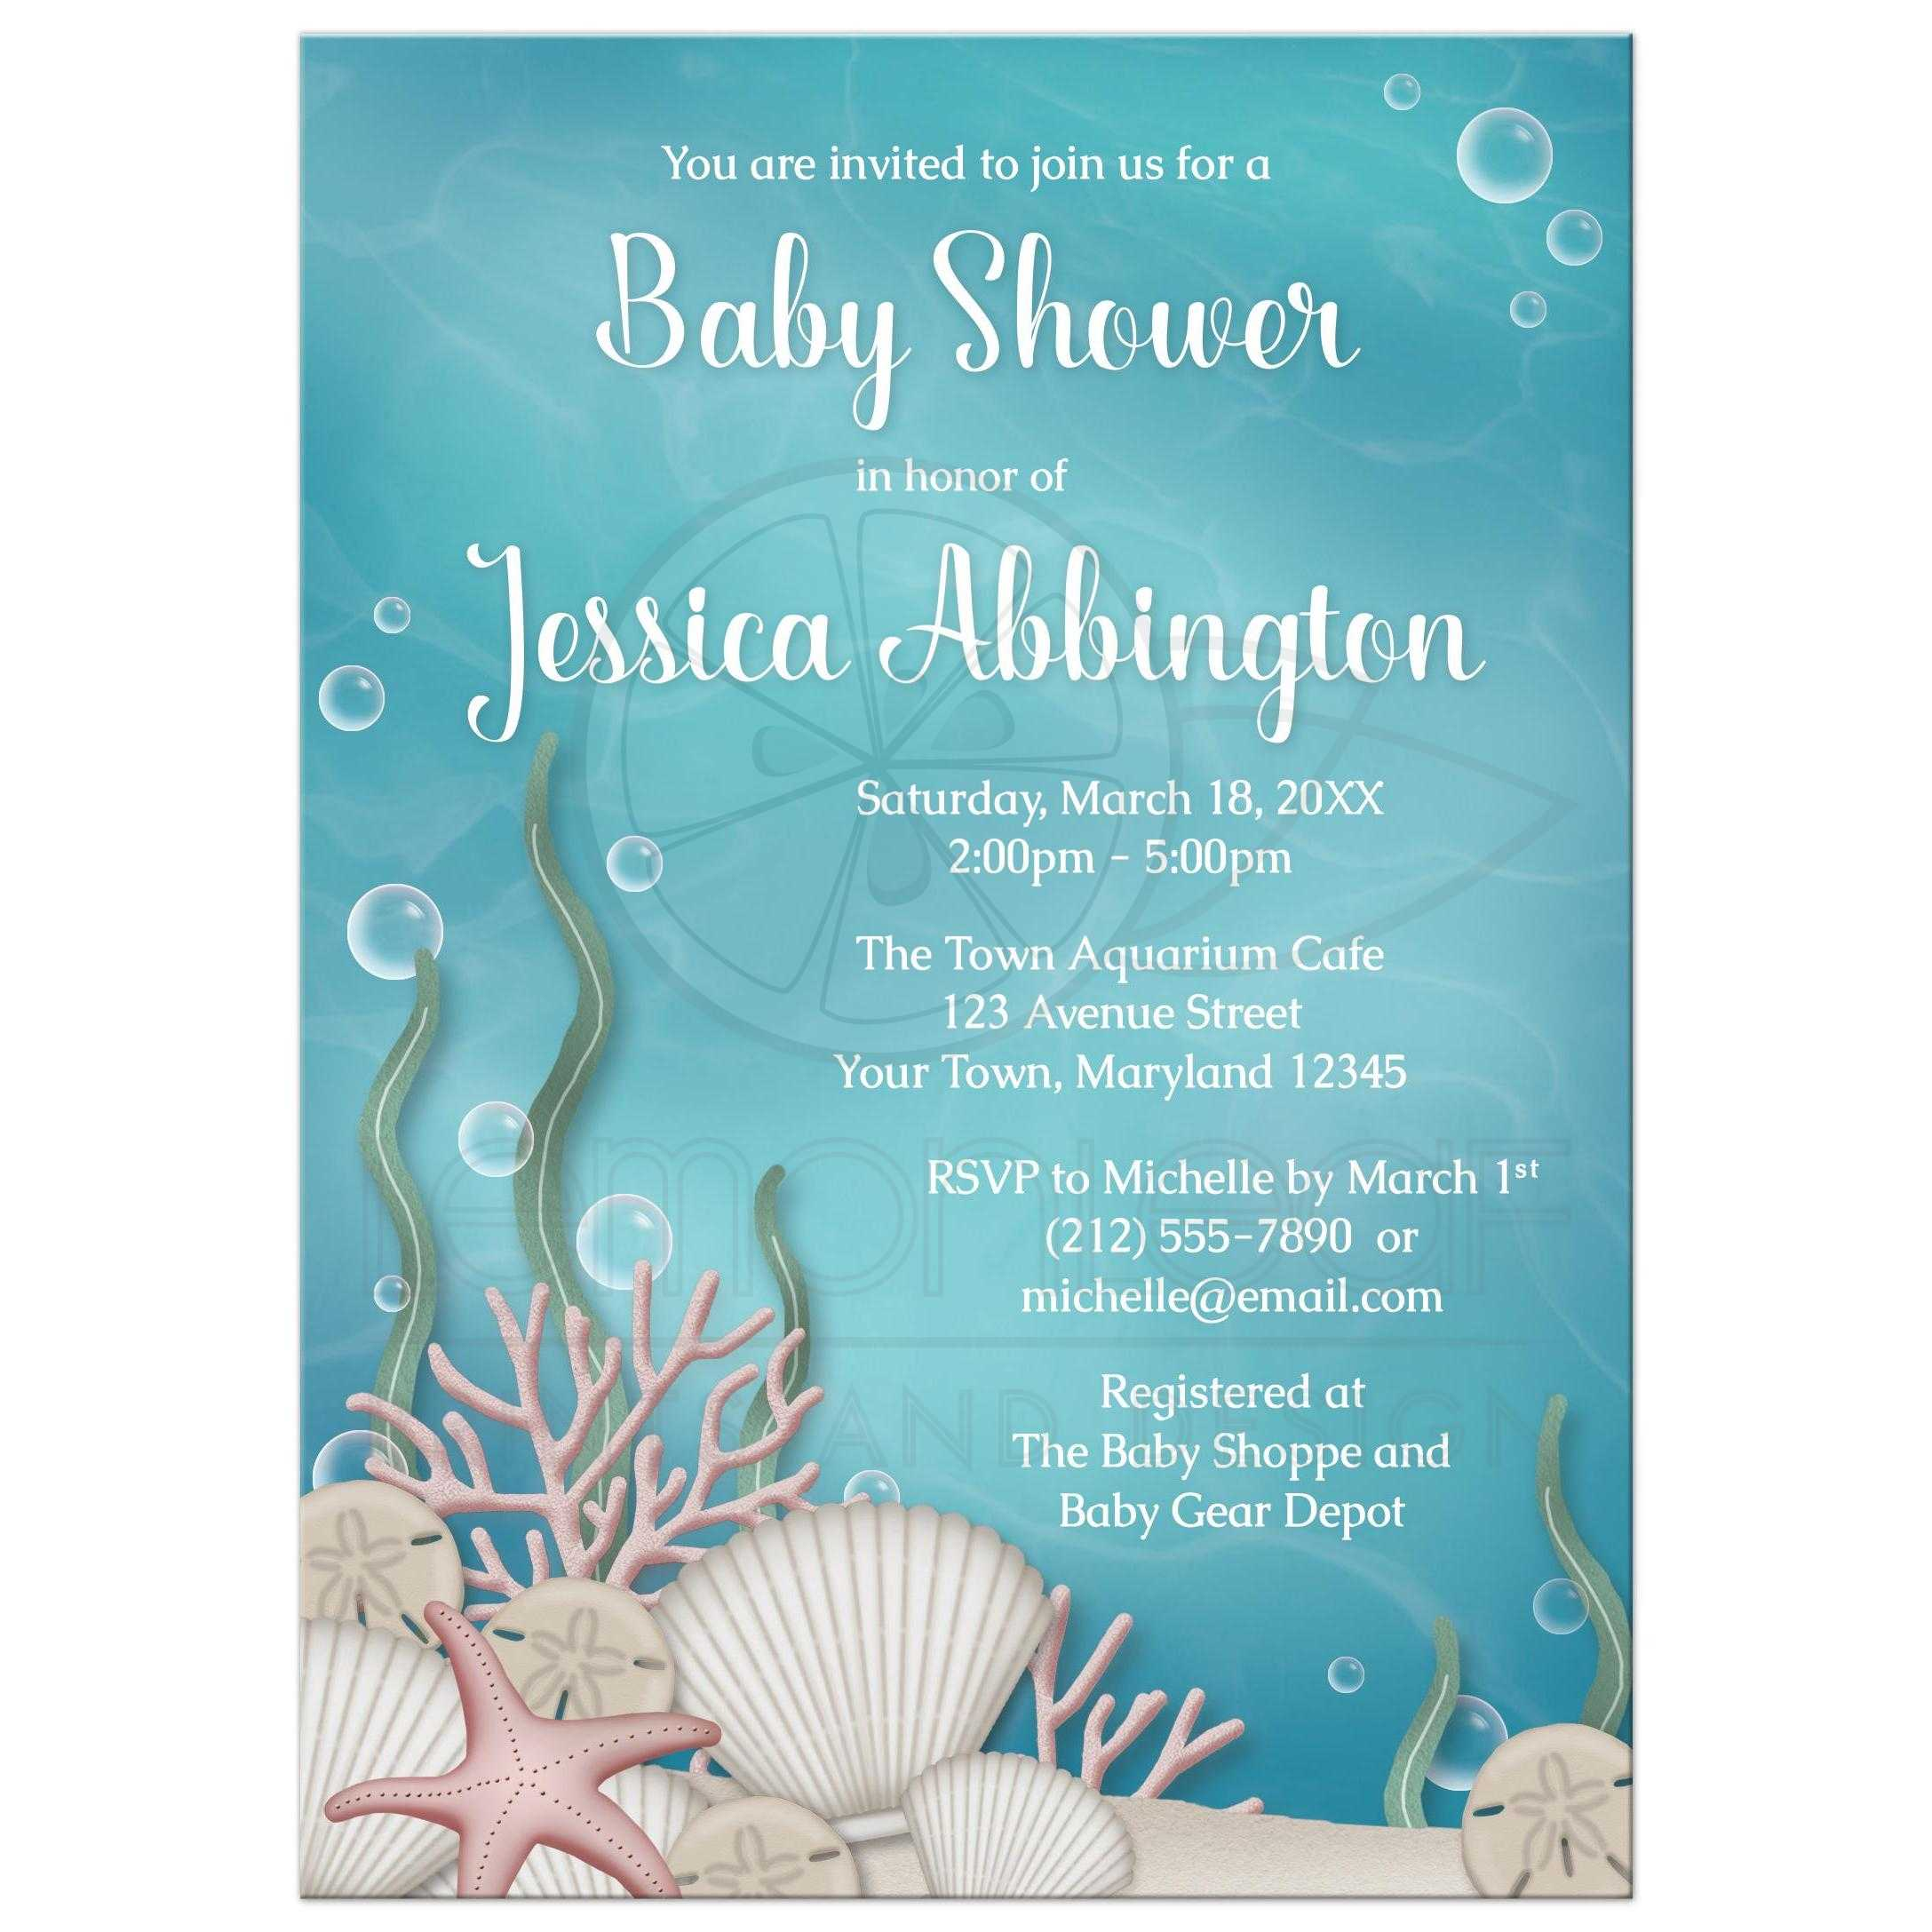 Baby Shower Invitations   Whimsical Under The Sea